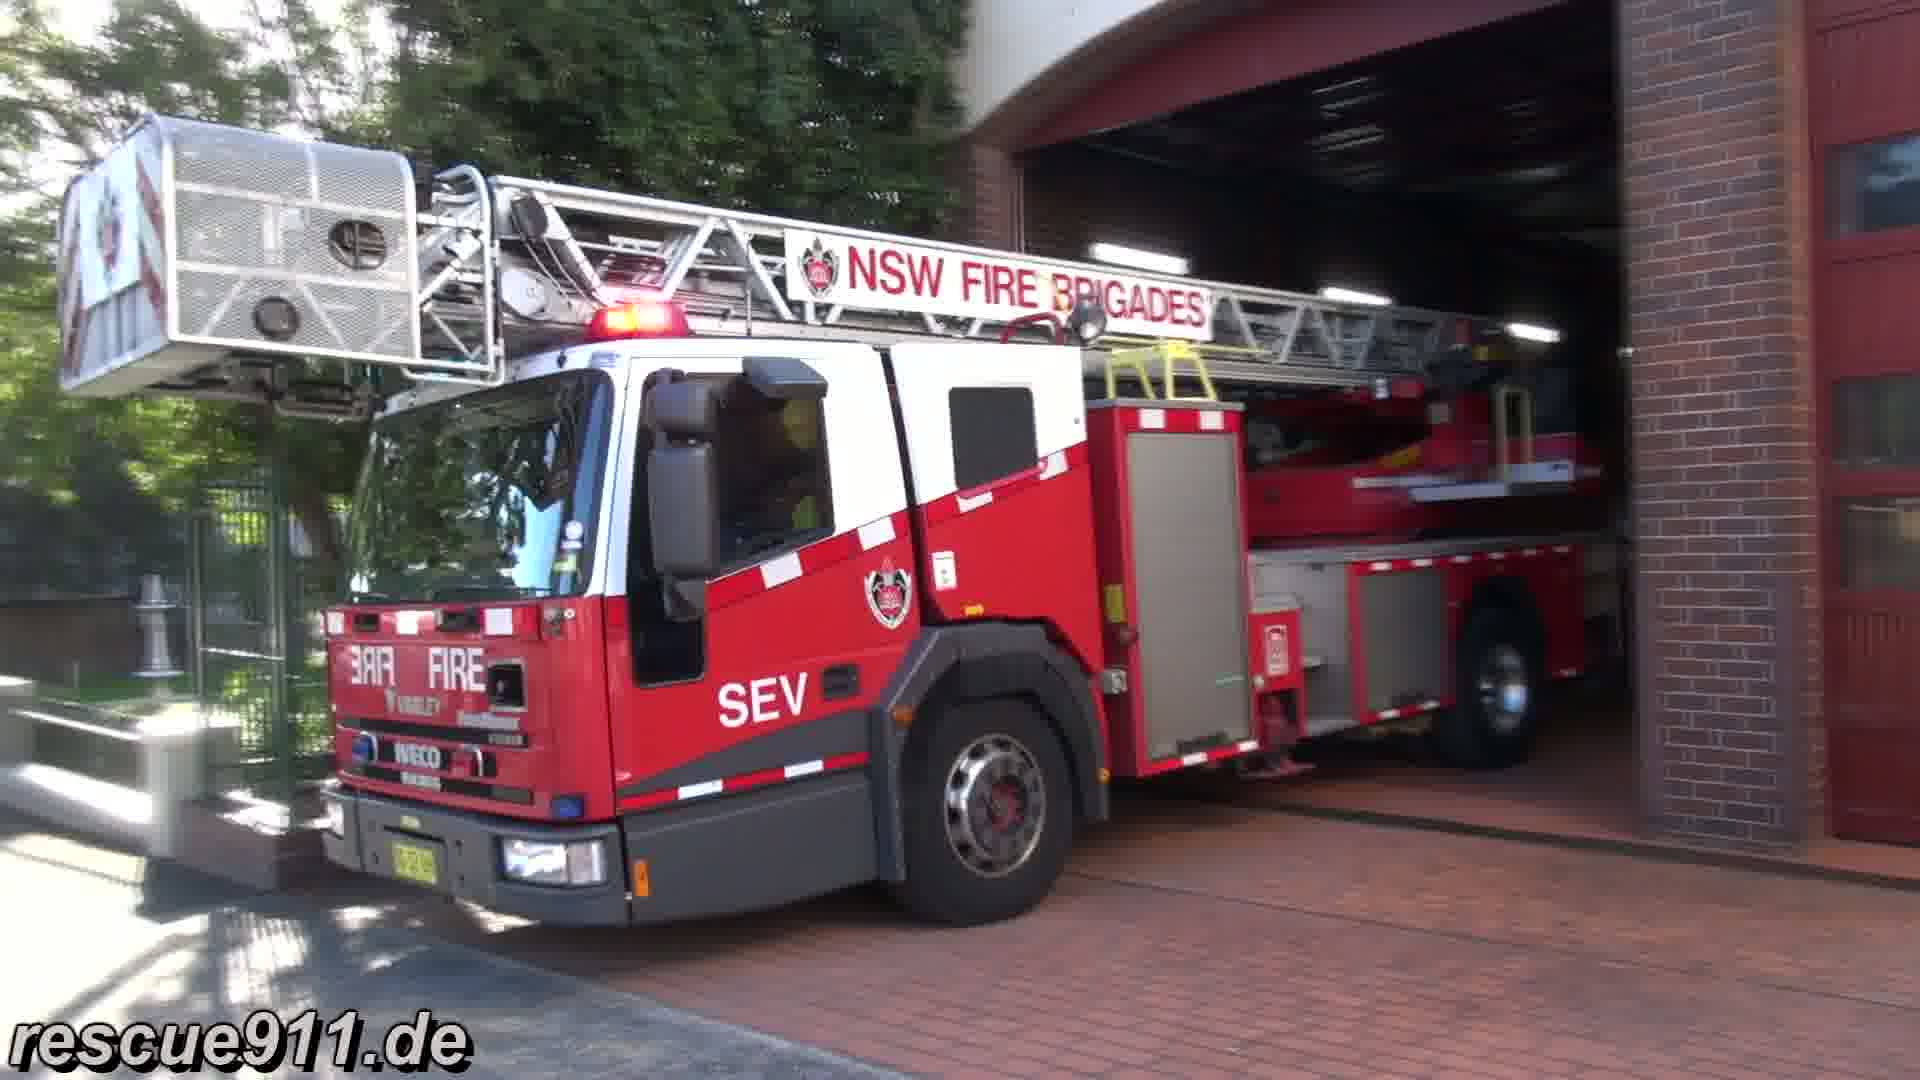 Ladder truck Fire & Rescue NSW Glebe Fire station (stream)